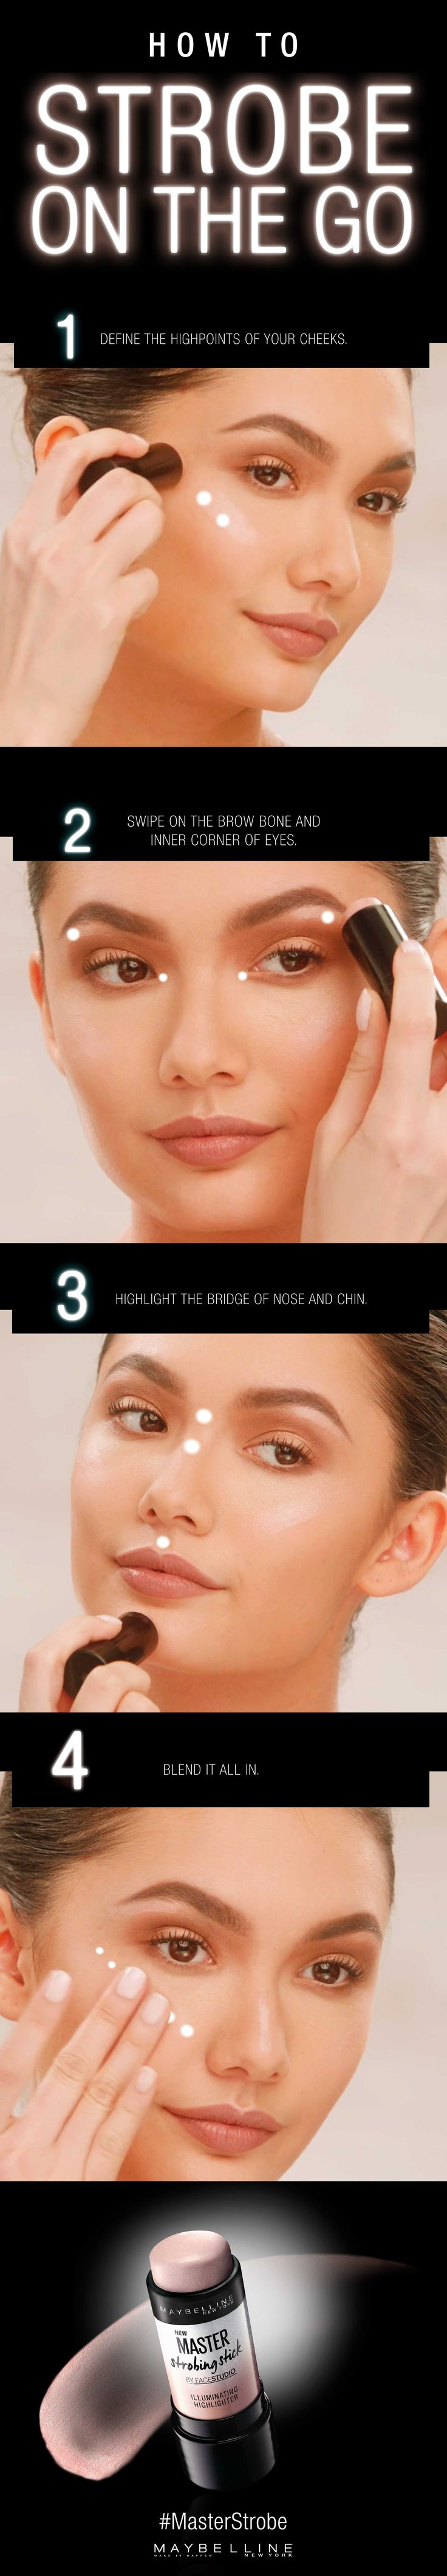 Maybelline Master Strobing Stick lights up your best features on the go. This step-by-step tutorial will show you how to make it happen. How To: Apply to high points of your face, blending with fingertips. The illuminating shimmer completes any makeup look. Bring a simple makeup look to the next level or go full glam by layering on the highlight. Get ready to flaunt effortless dimension and stunning radiance. Let's strobe to glow.